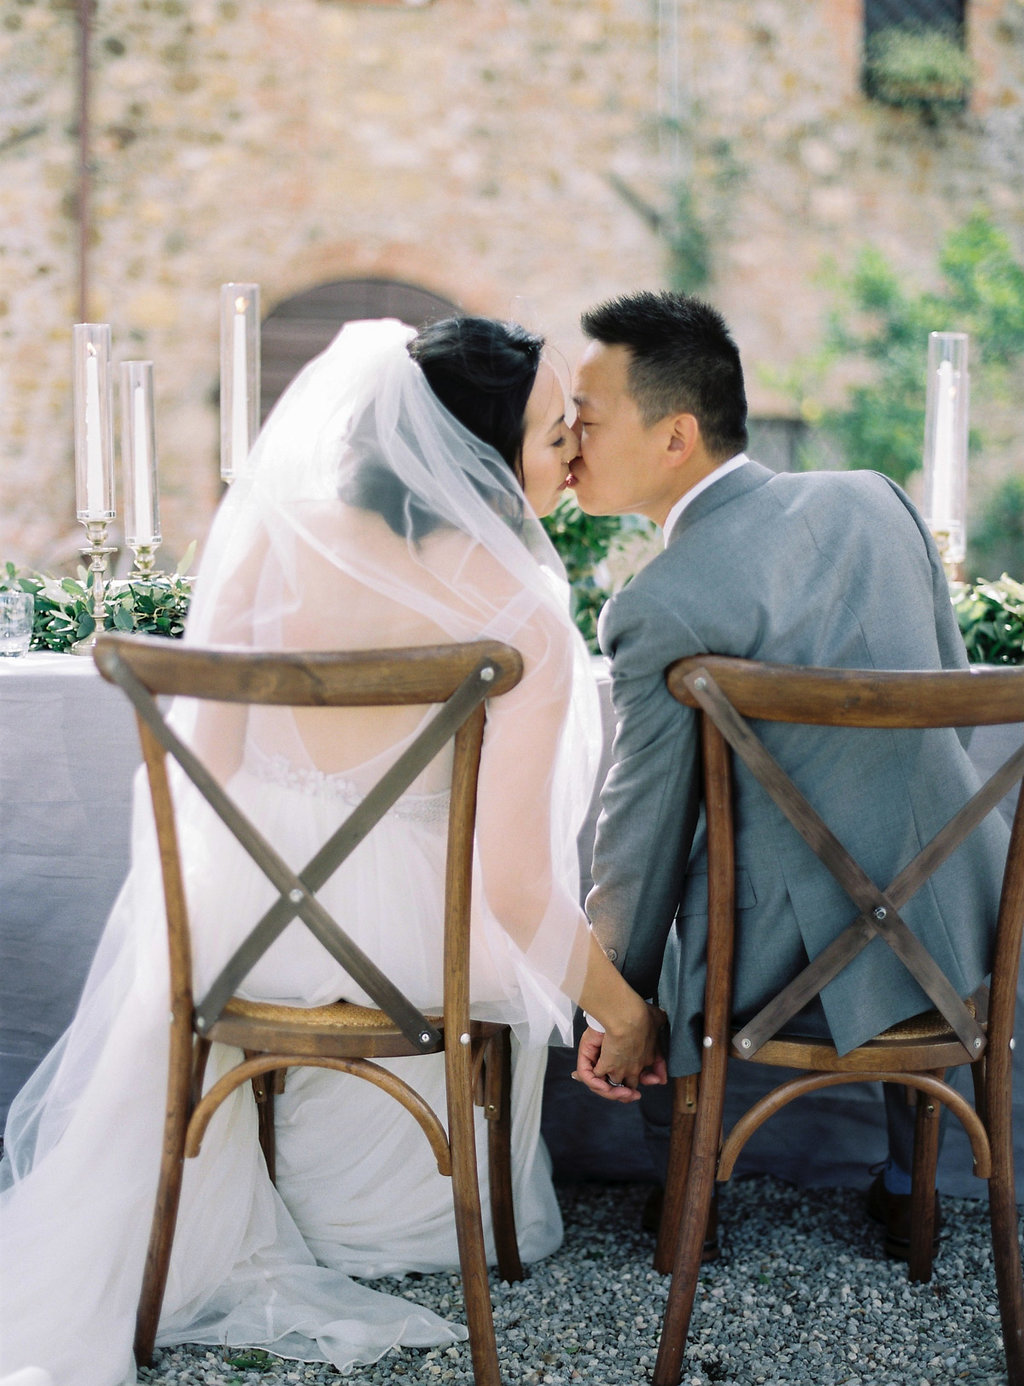 sweetheart table kisses - photo by Katie Grant Photography http://ruffledblog.com/classically-beautiful-intimate-wedding-in-tuscany